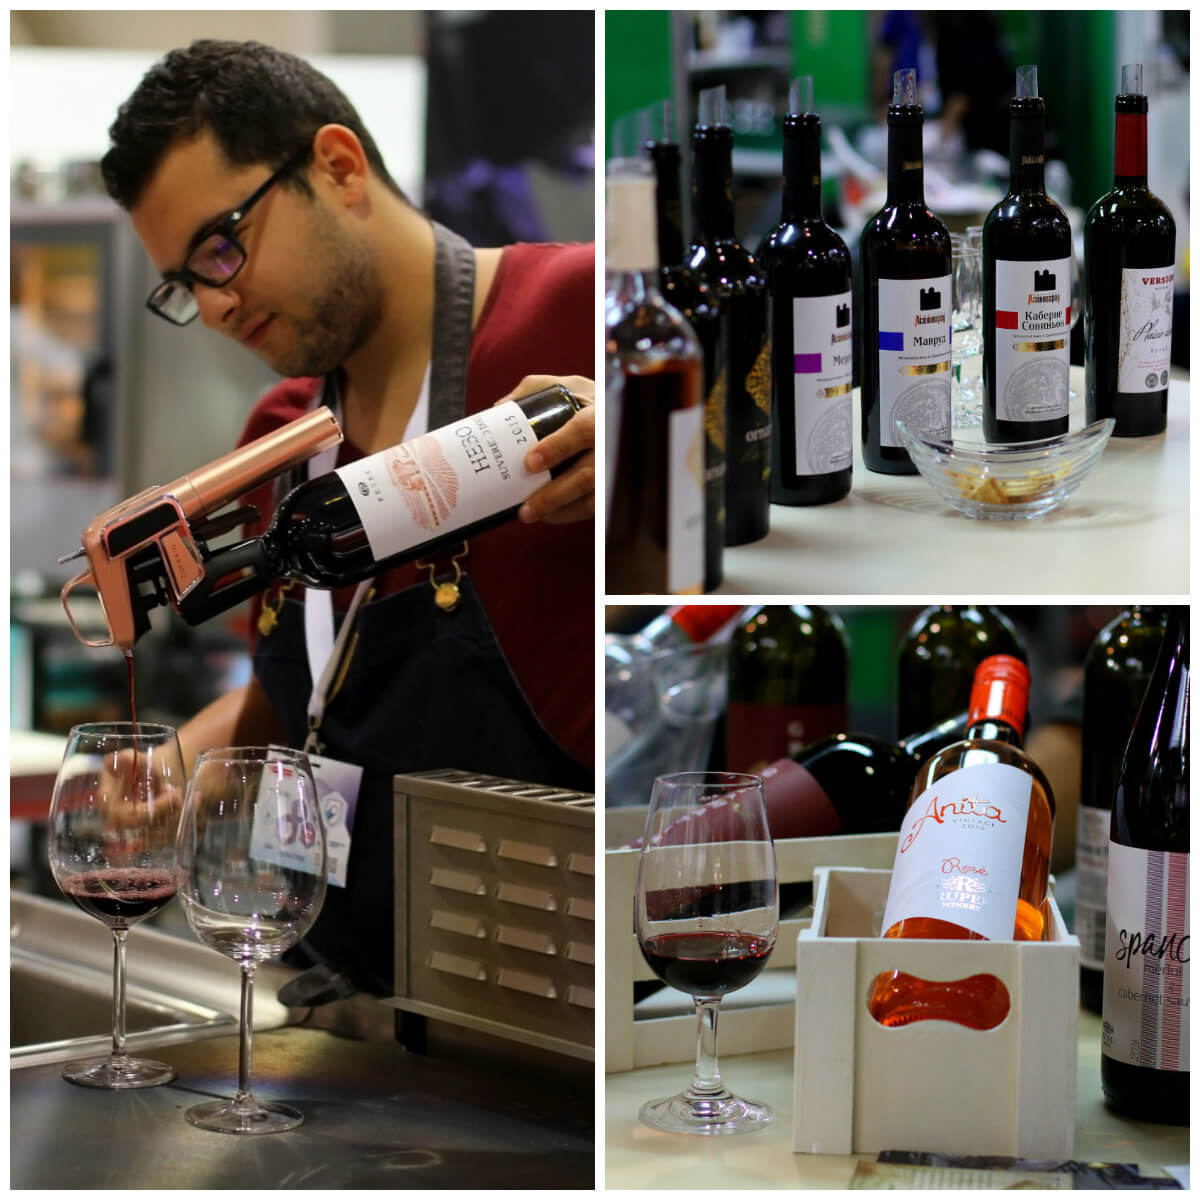 salon du vin event sofia bulgaria 2018